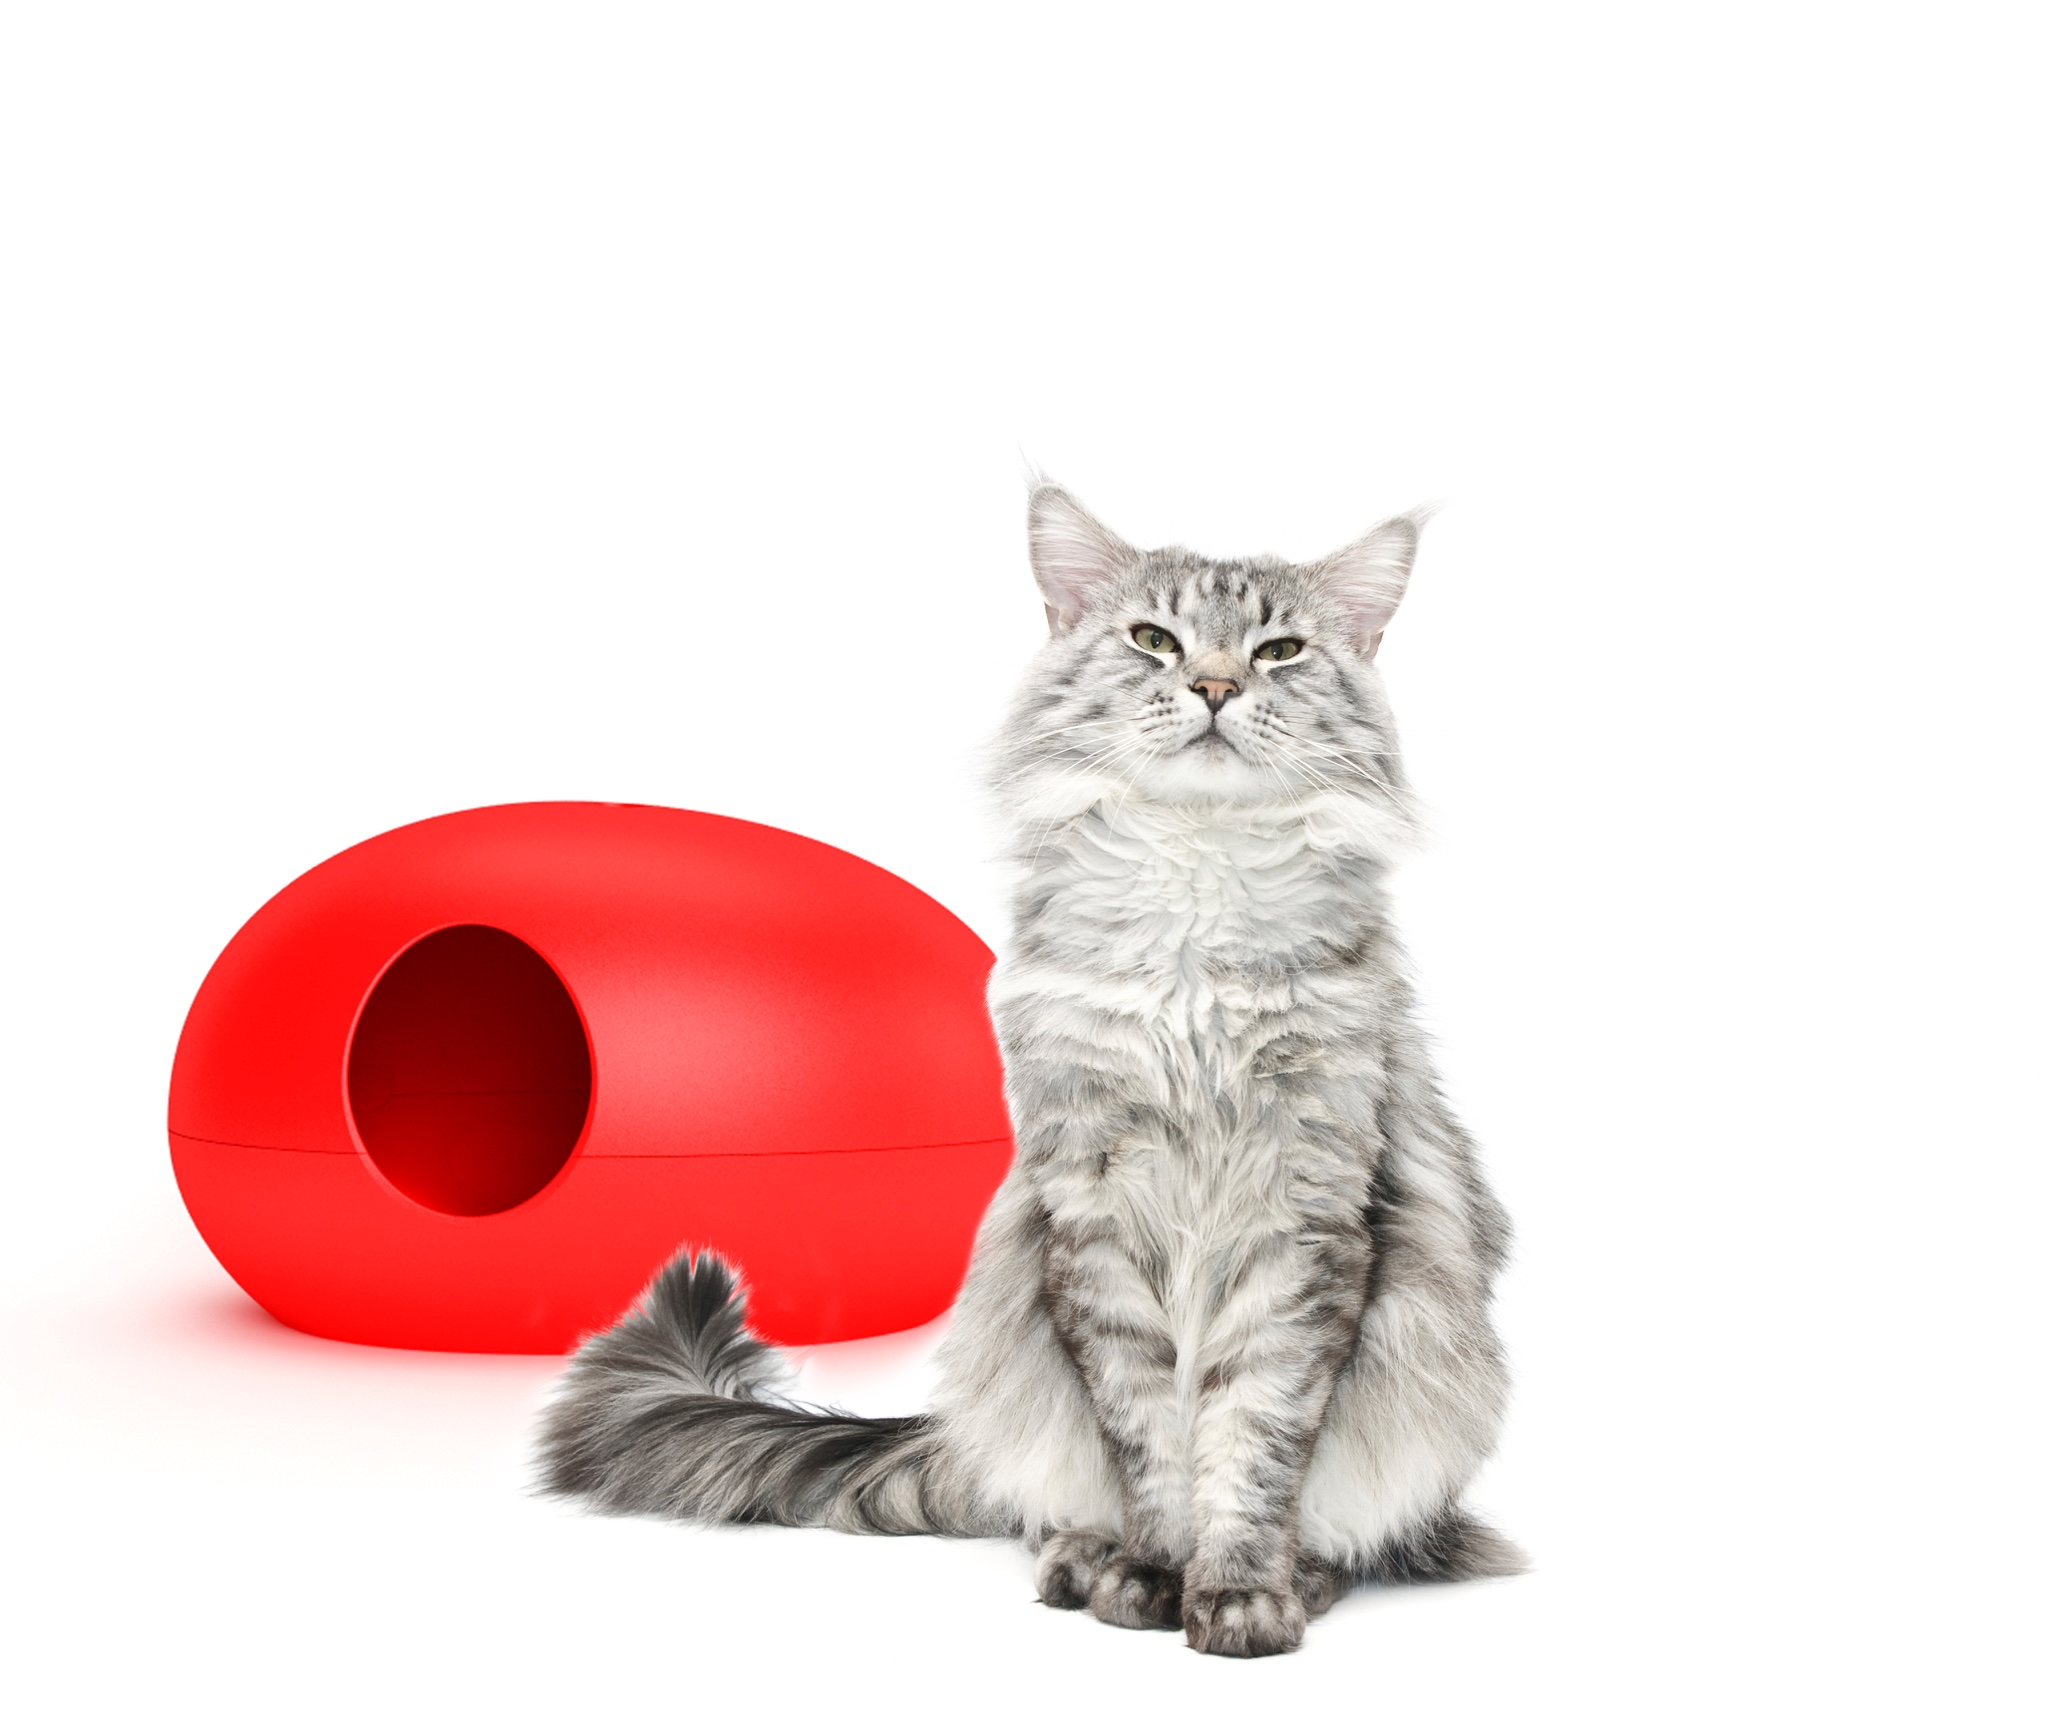 Luxury Red Poopoopeedo Cat Litter Box